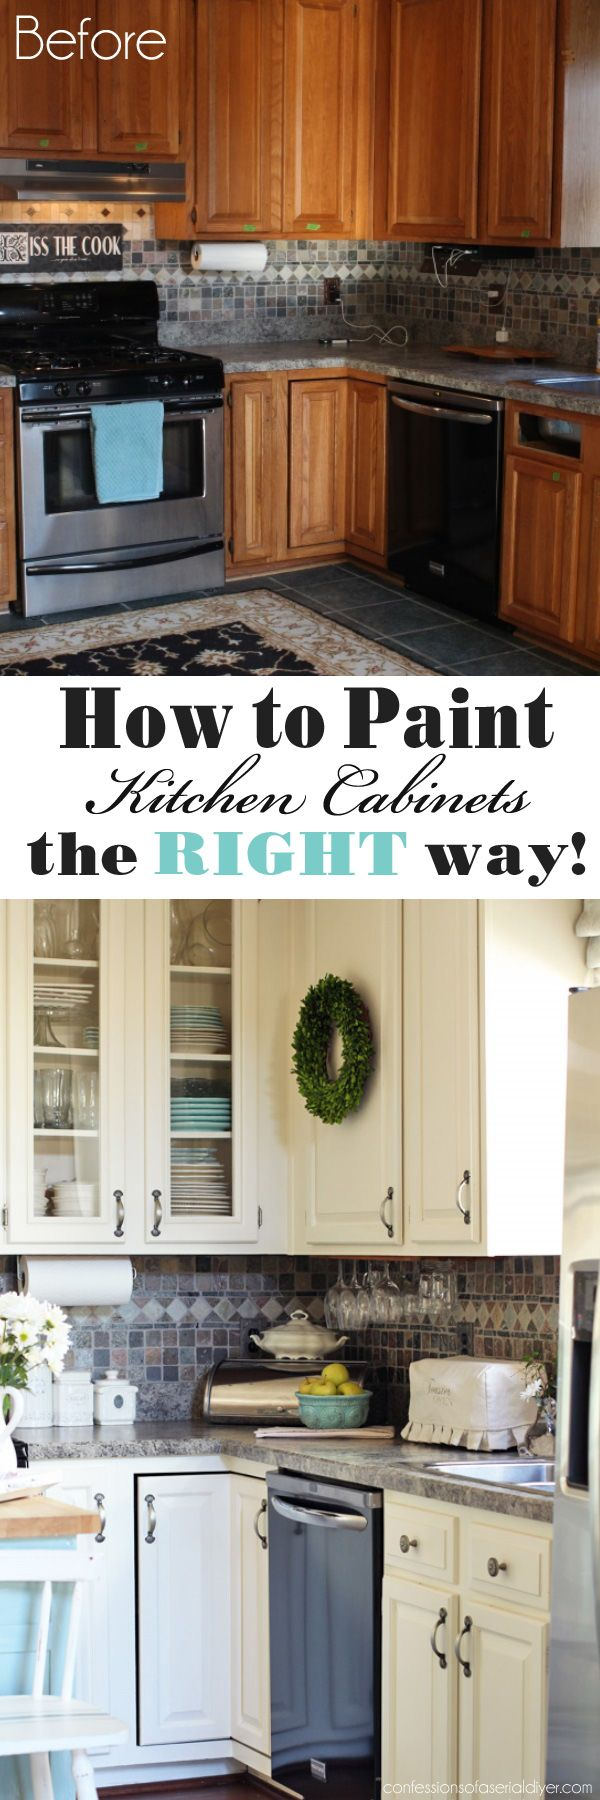 How to Paint Kitchen Cabinets the RIGHT way from Confessions of a Serial Do-it-Yourselfer